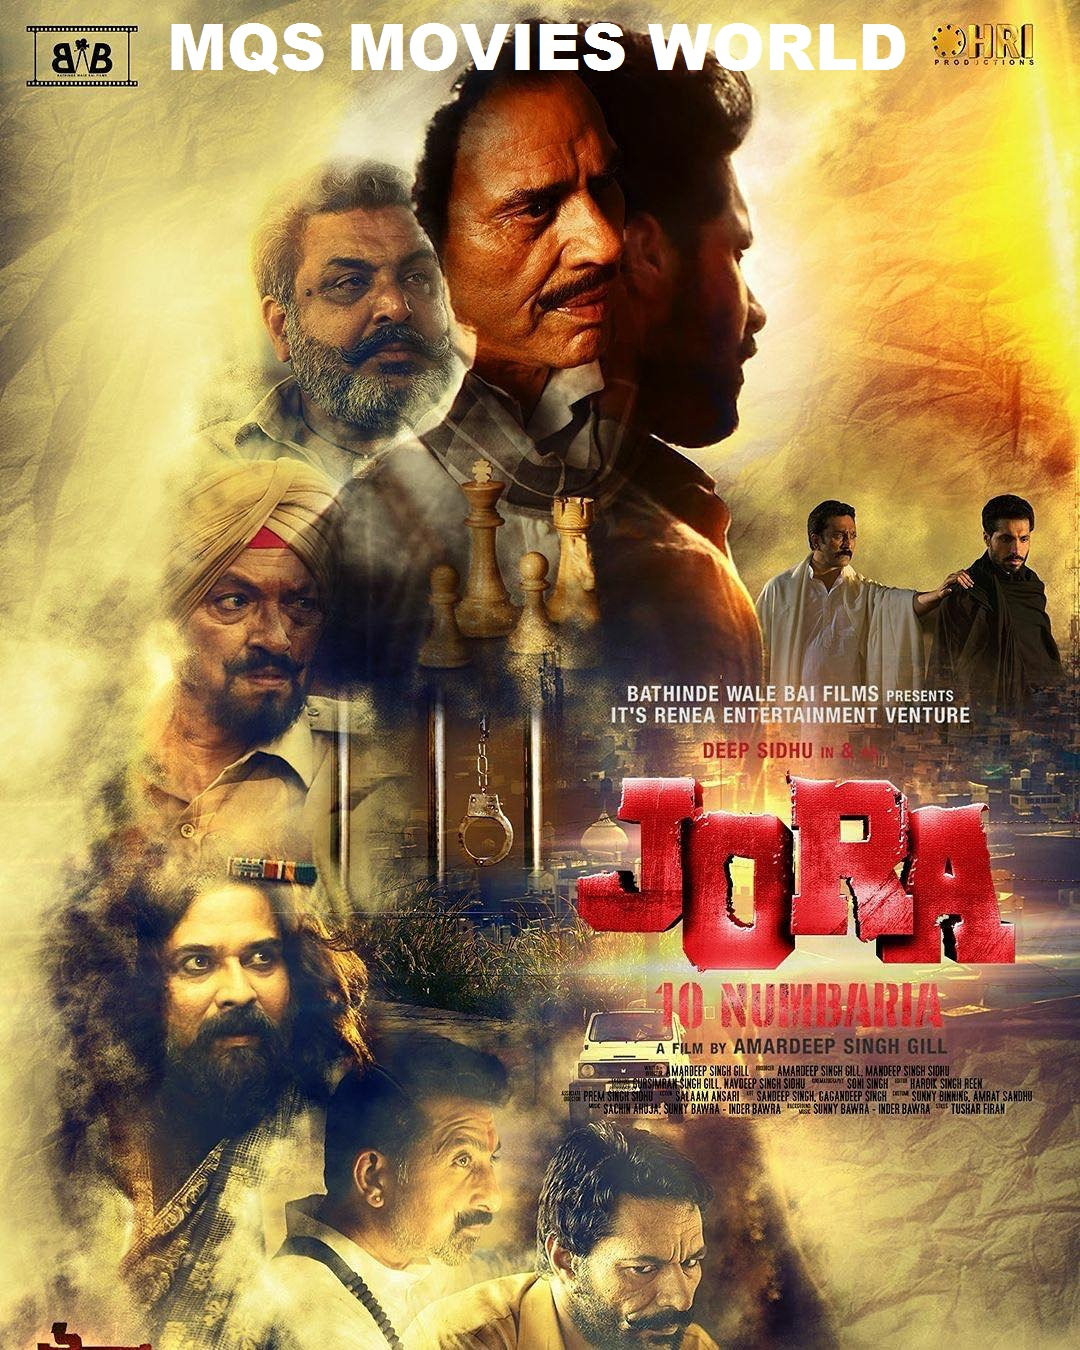 jora 10 numbaria (2017) punjabi full movie download free hd-mqs